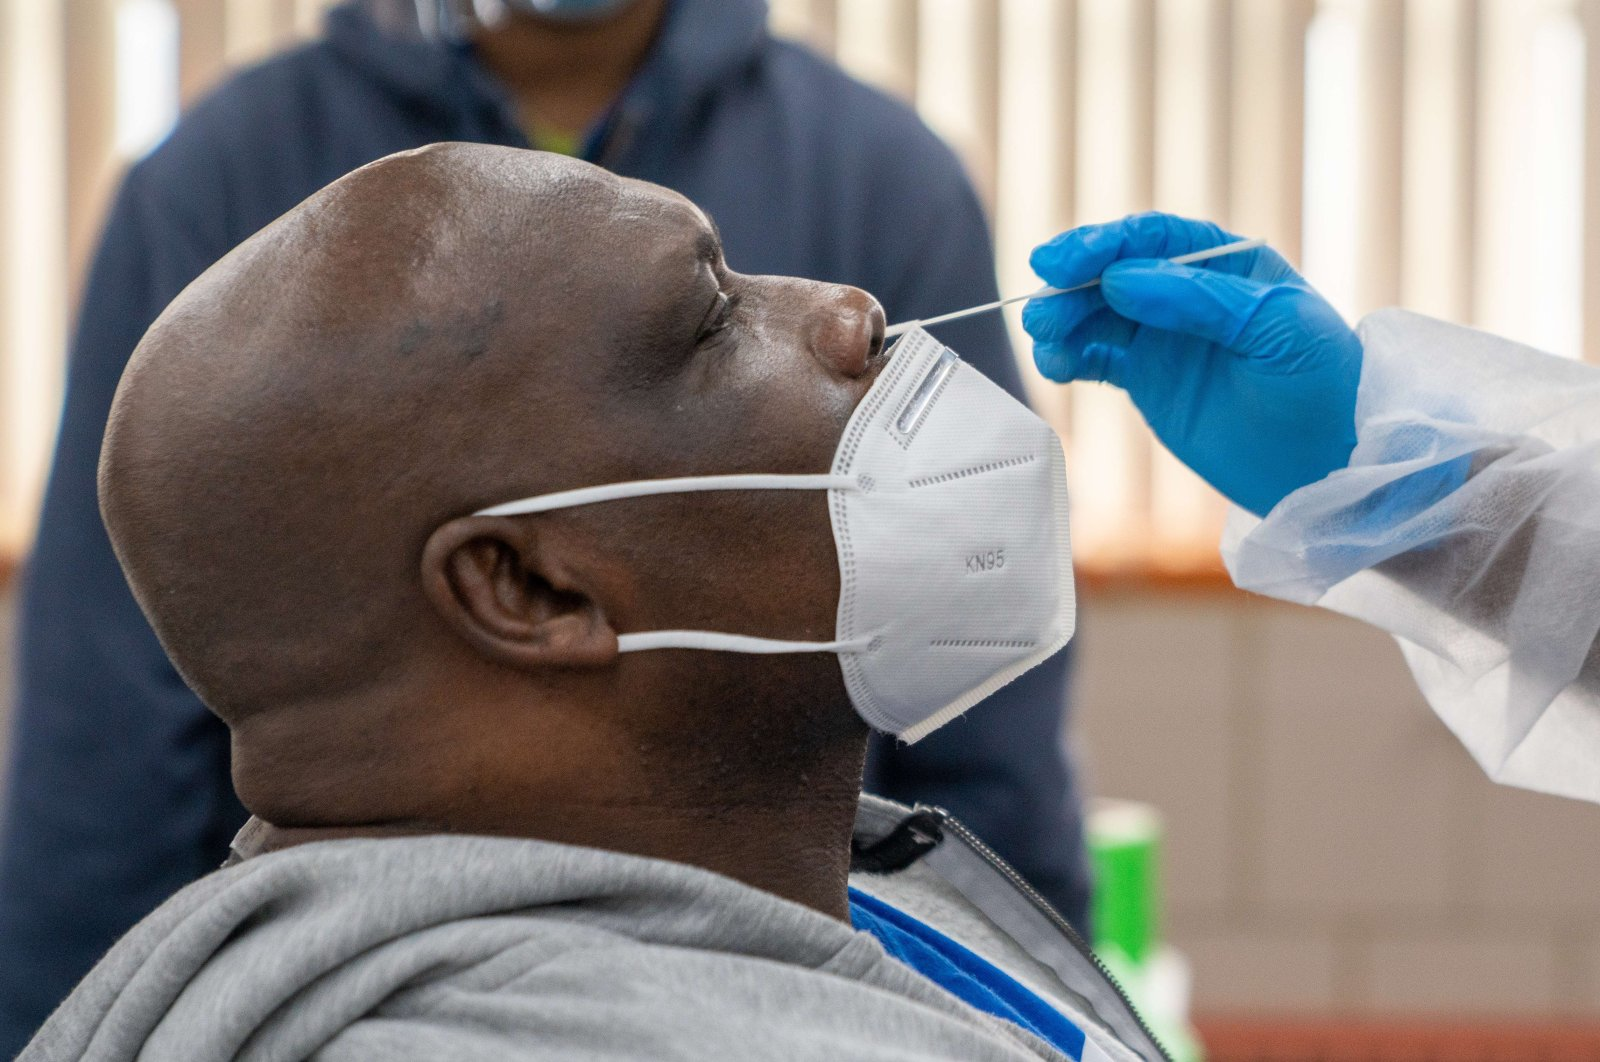 A man is administered a COVID-19 test, in New York, Oct. 30, 2020. (Getty Images via AFP)